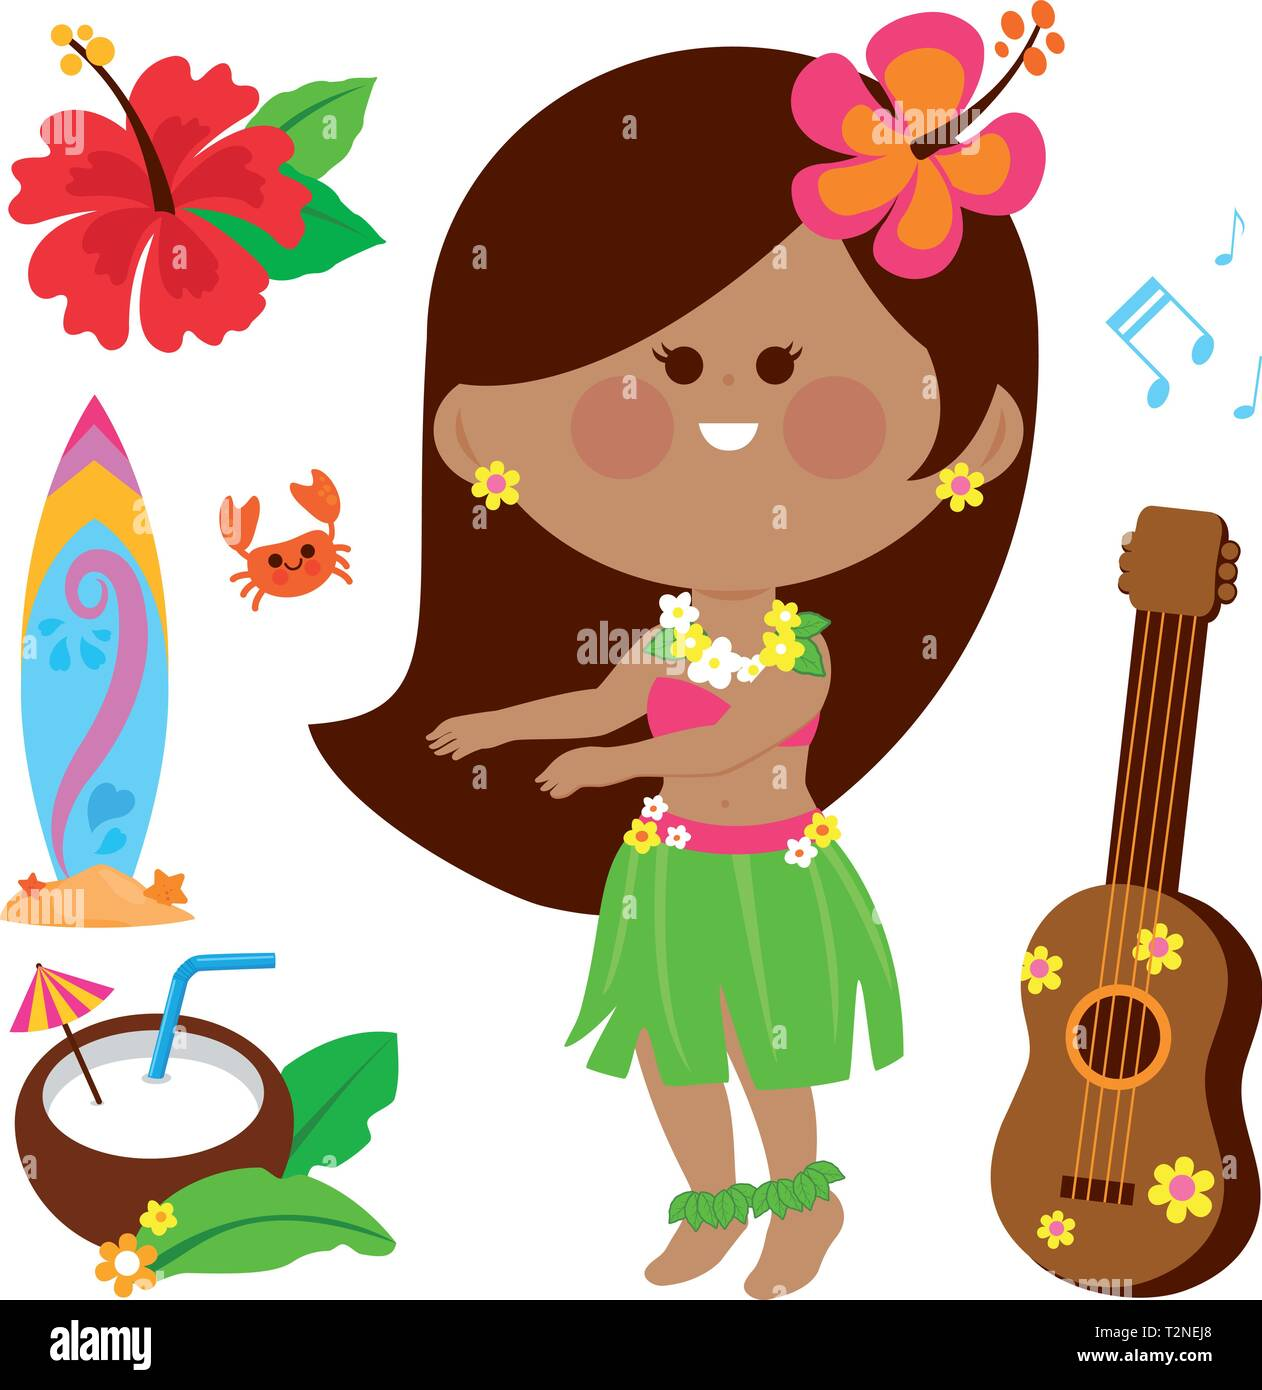 Vector illustration collection of a Hawaiian hula dancer girl and other beach summer vacation design elements. - Stock Vector